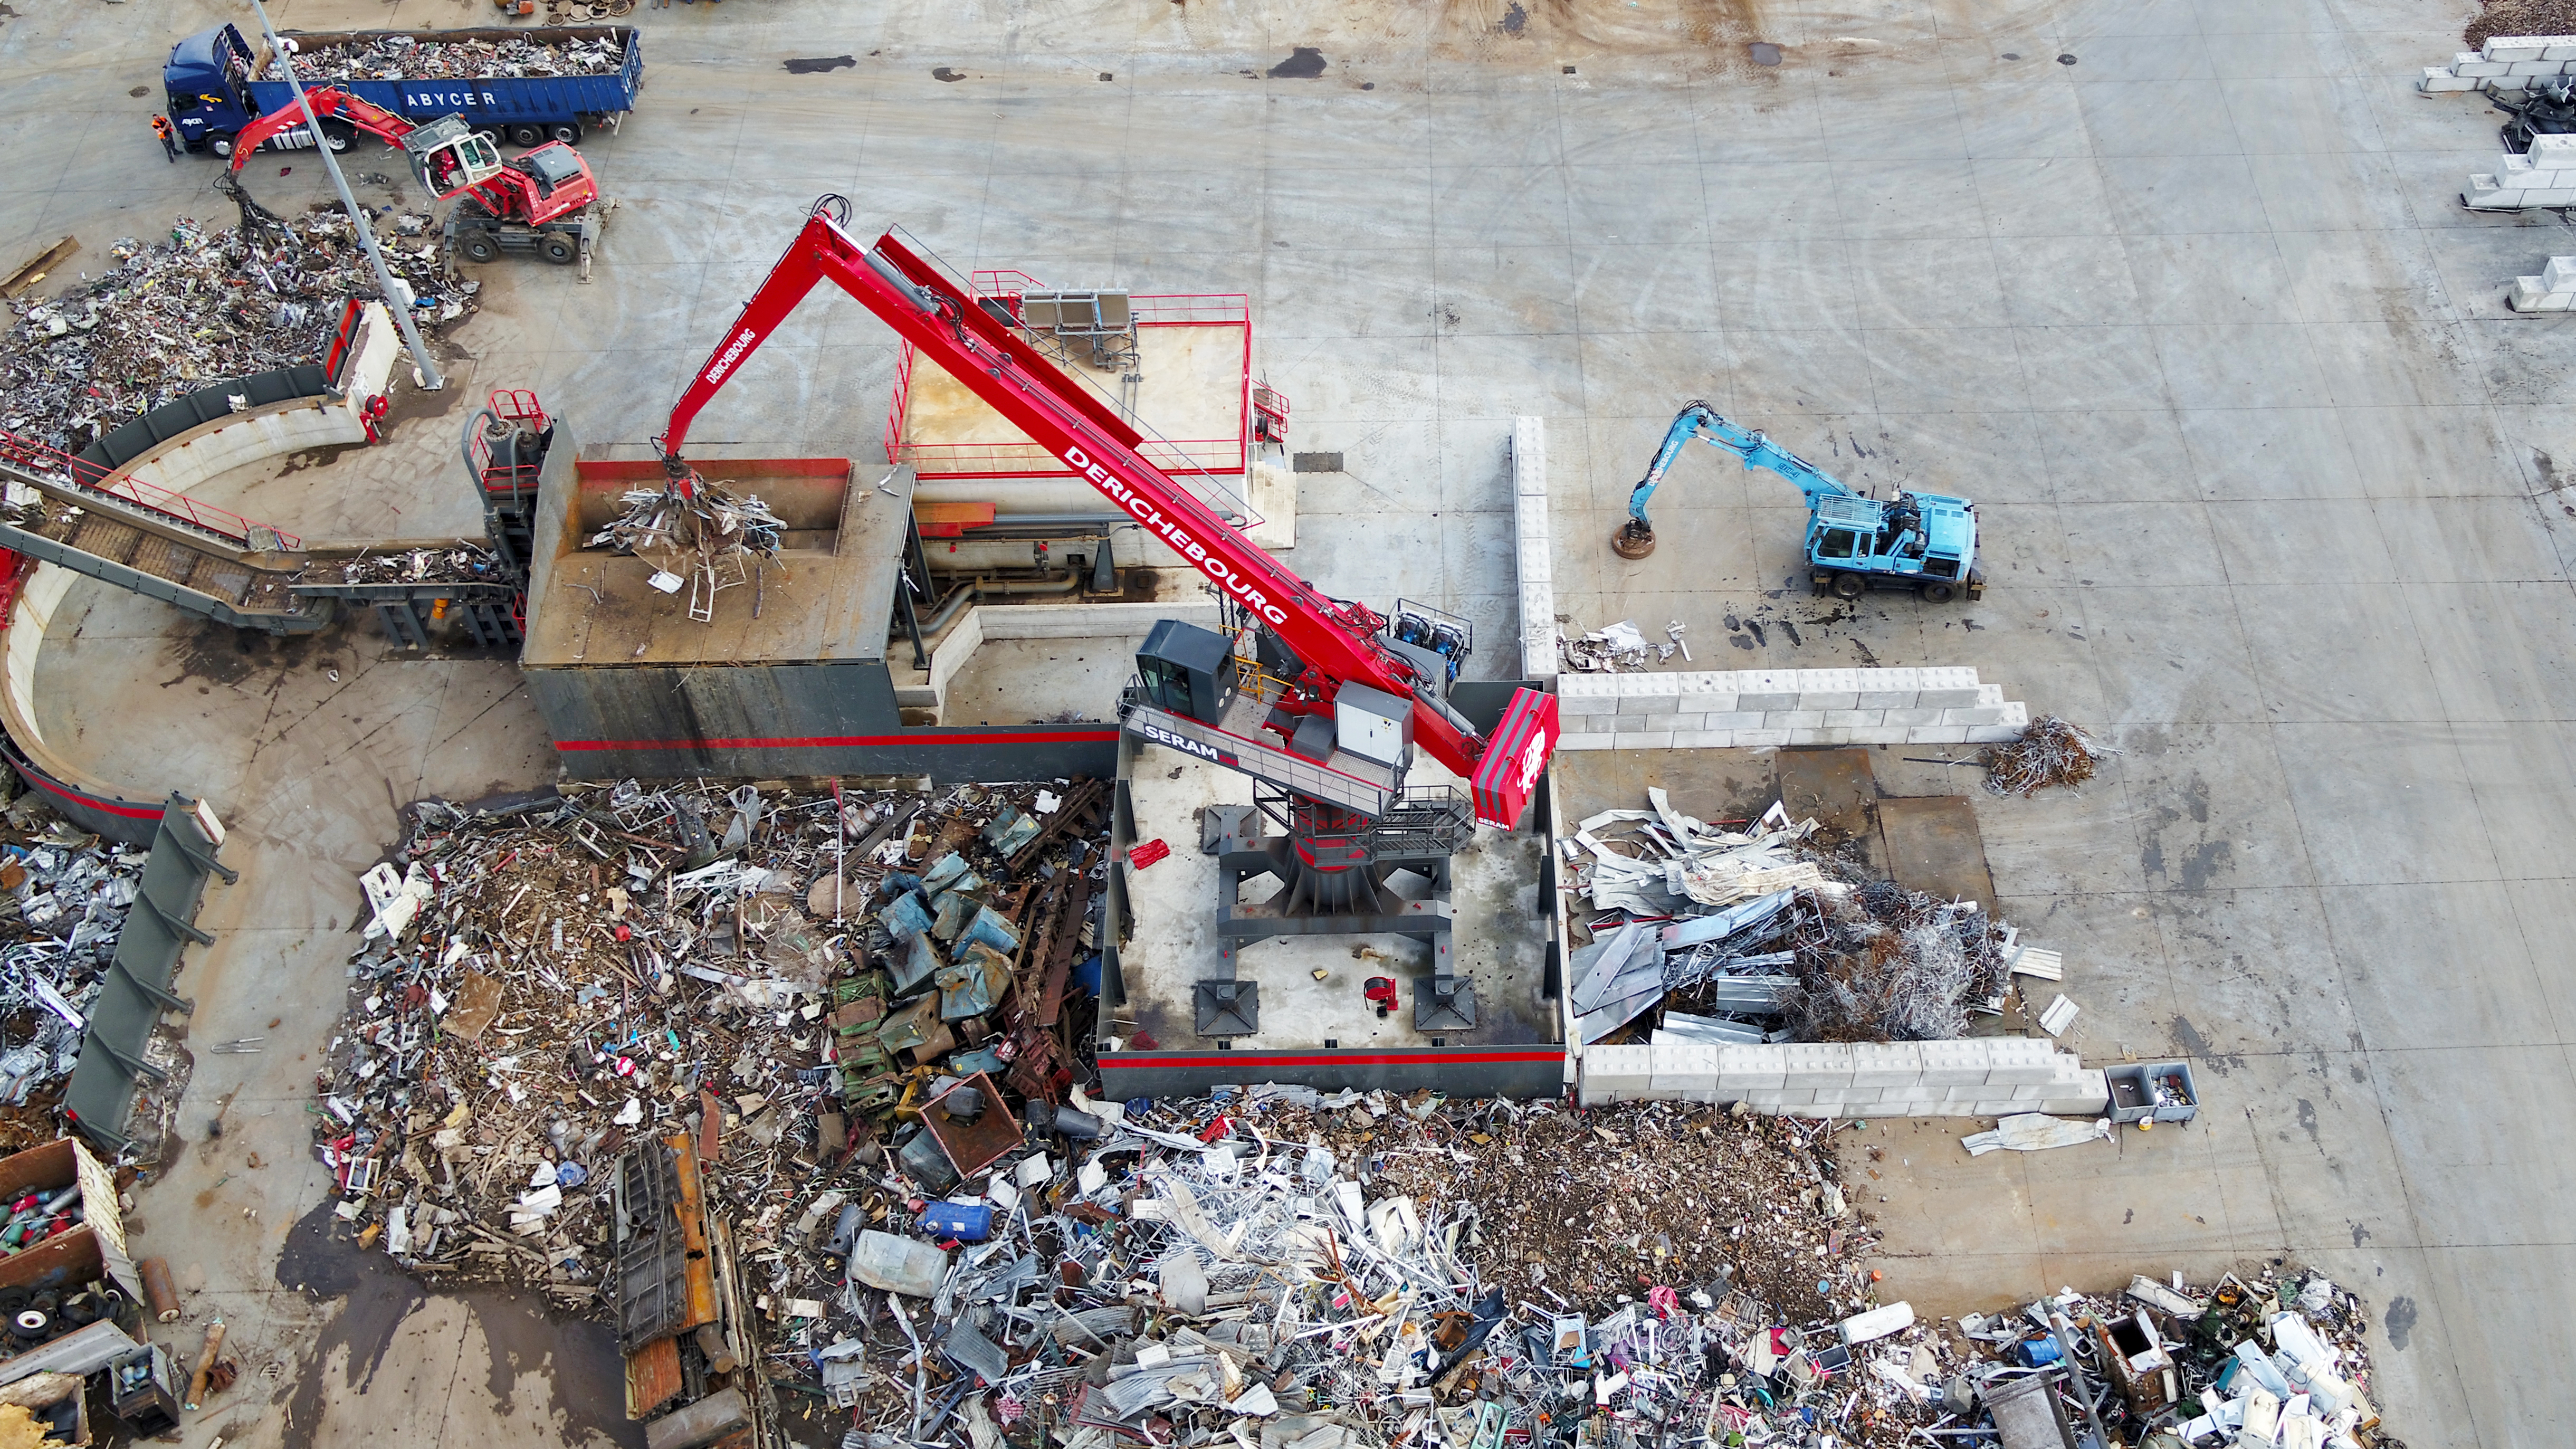 Afm-Recyclage-Avrille-Seci-2